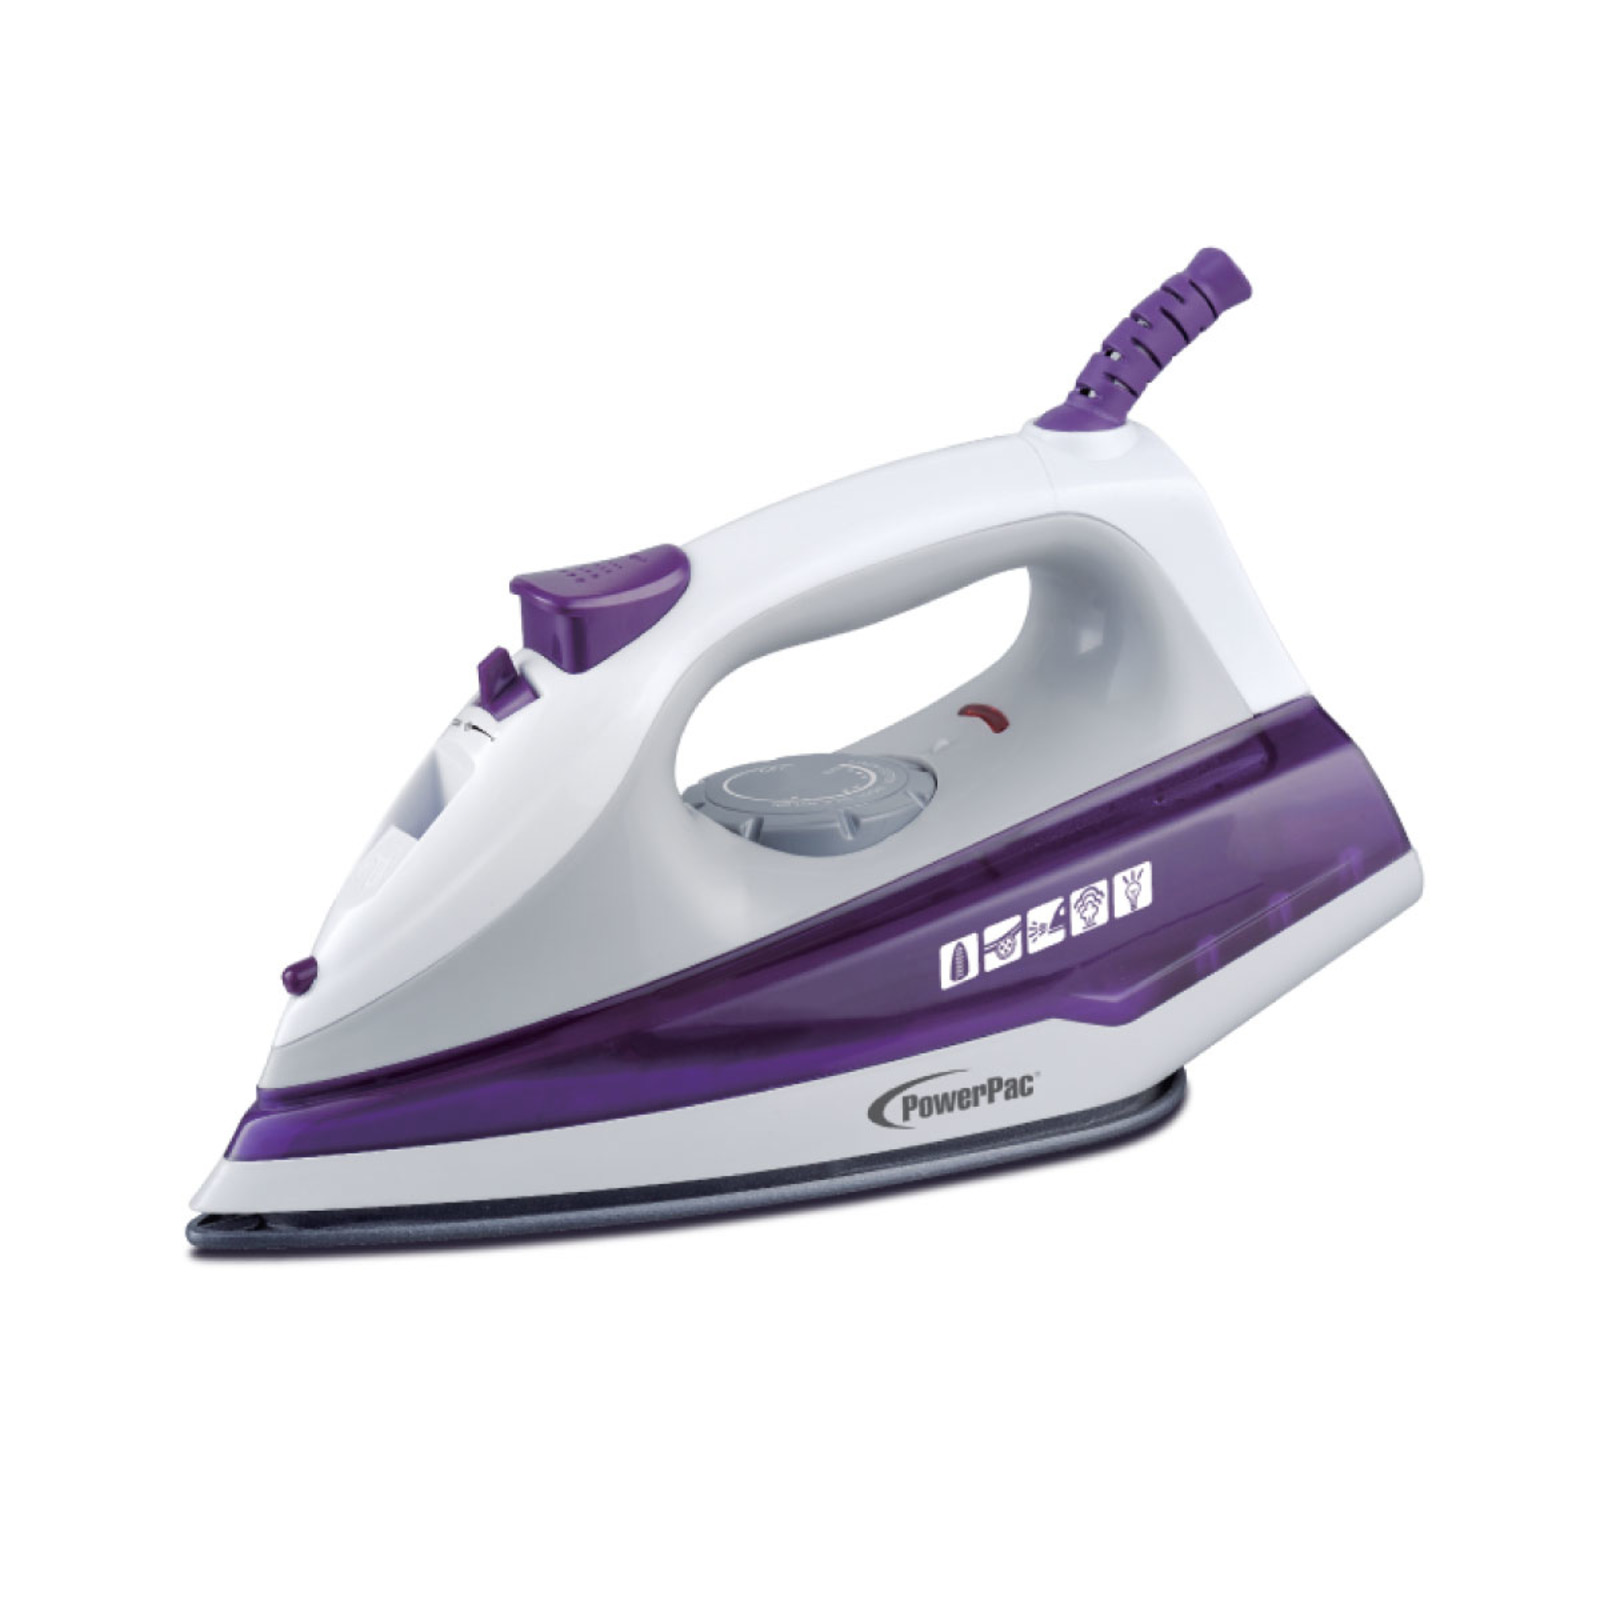 PowerPac Water Spray Dry Iron 1400W PPIN1107